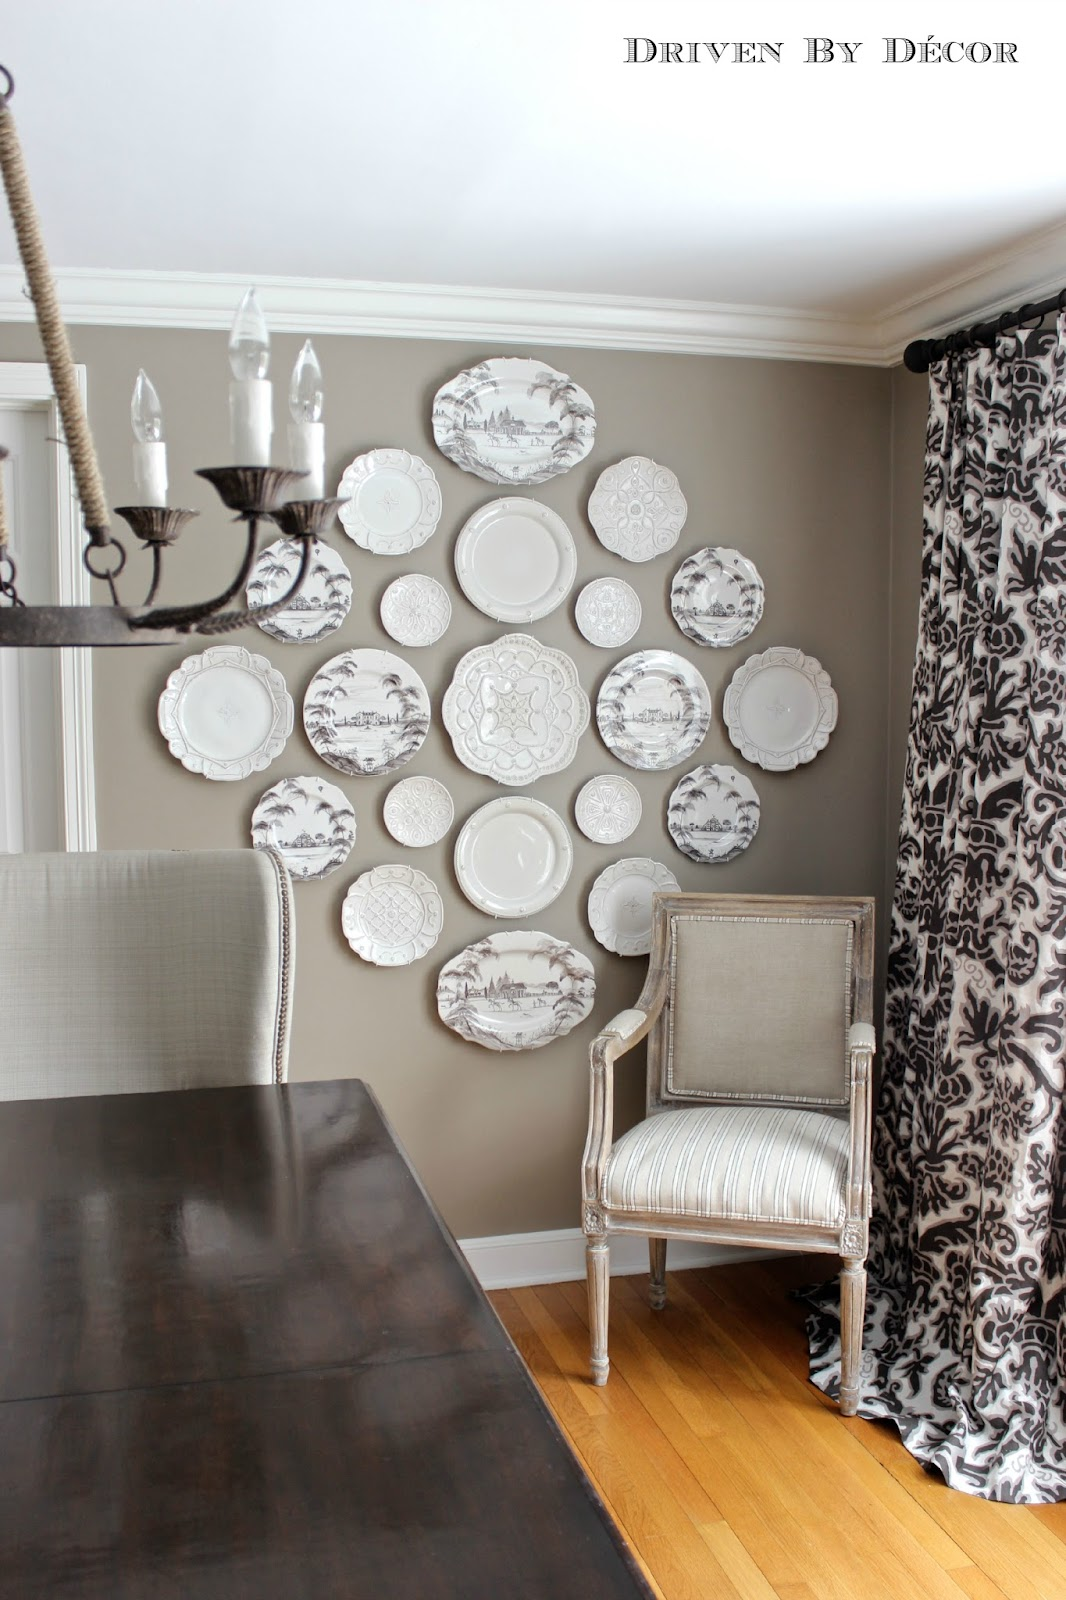 The easy how to for hanging plates on the wall driven by decor - Decoratie dressing ...